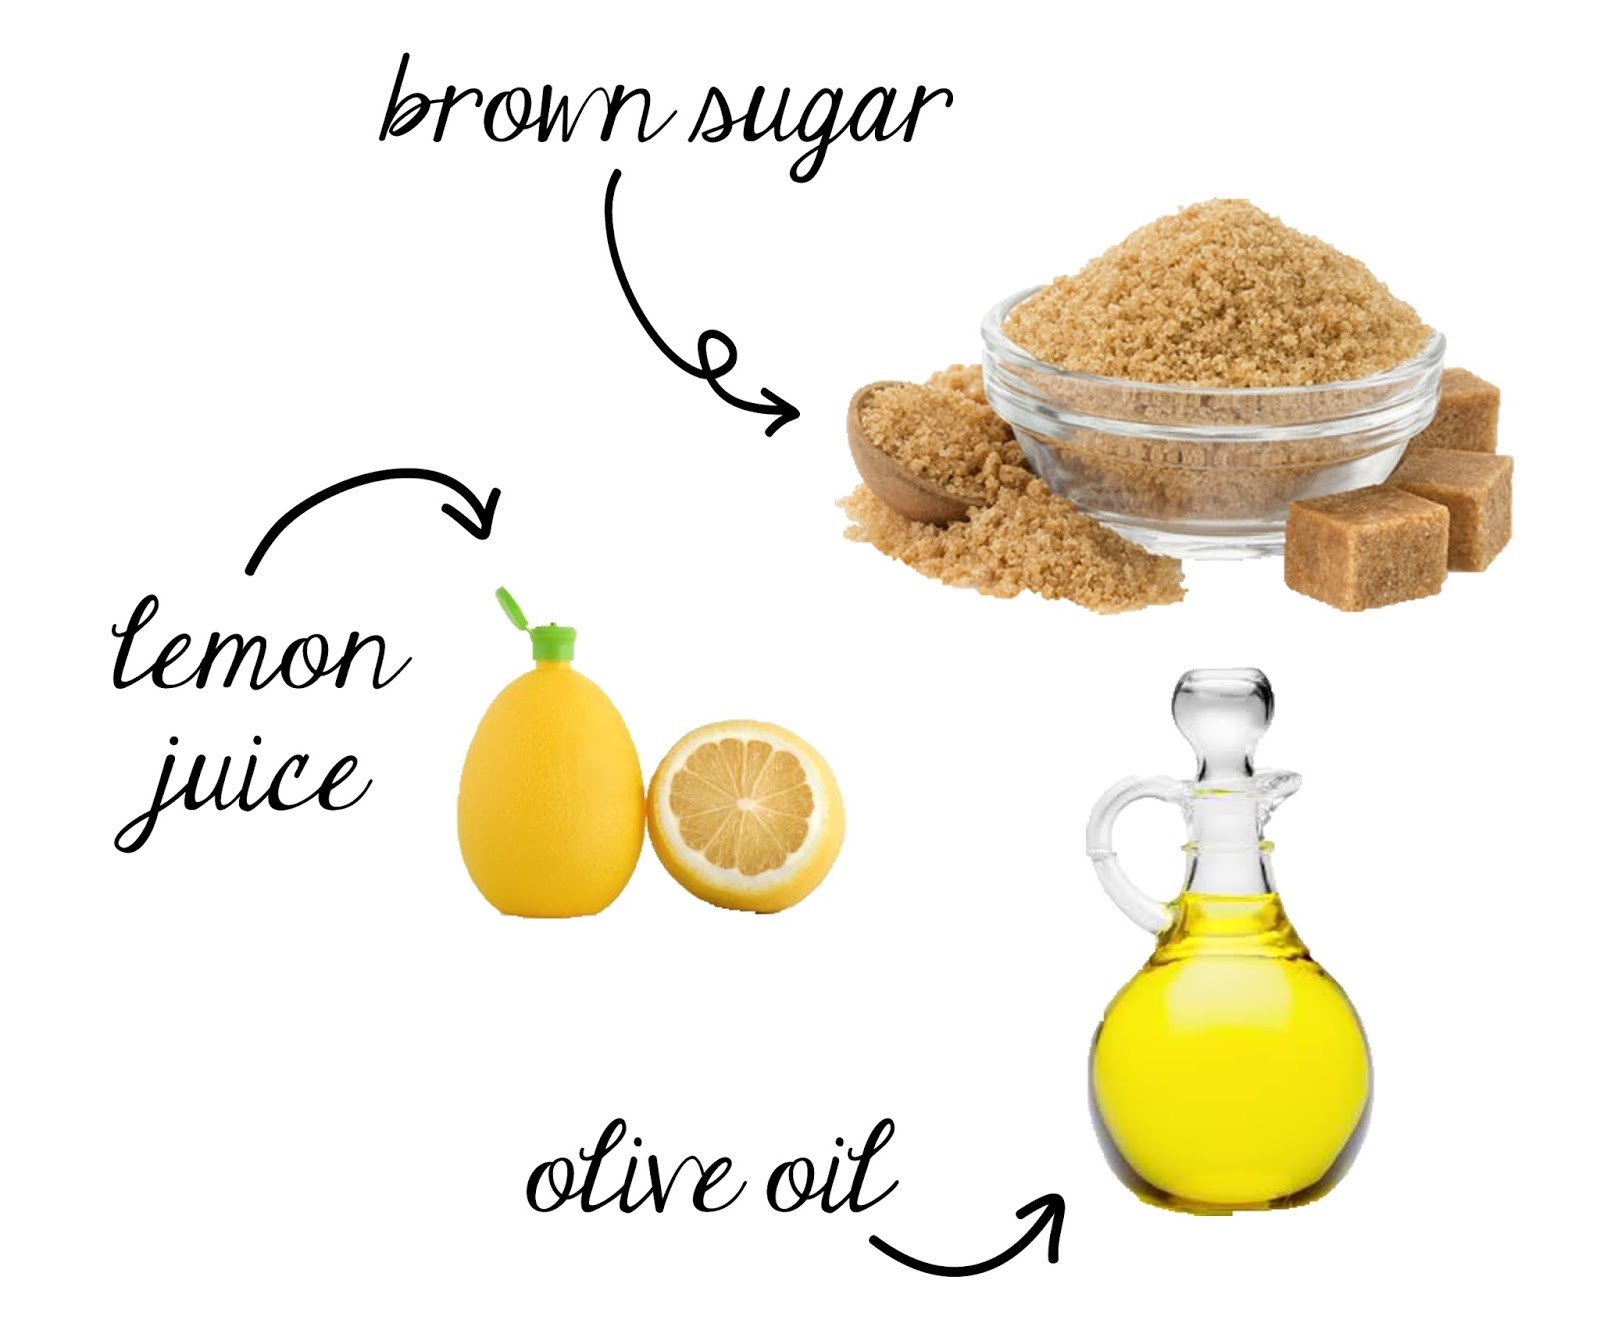 The Brown Sugar Works As An Exfoliant To Get Rid Of All The Dead Skin Cells